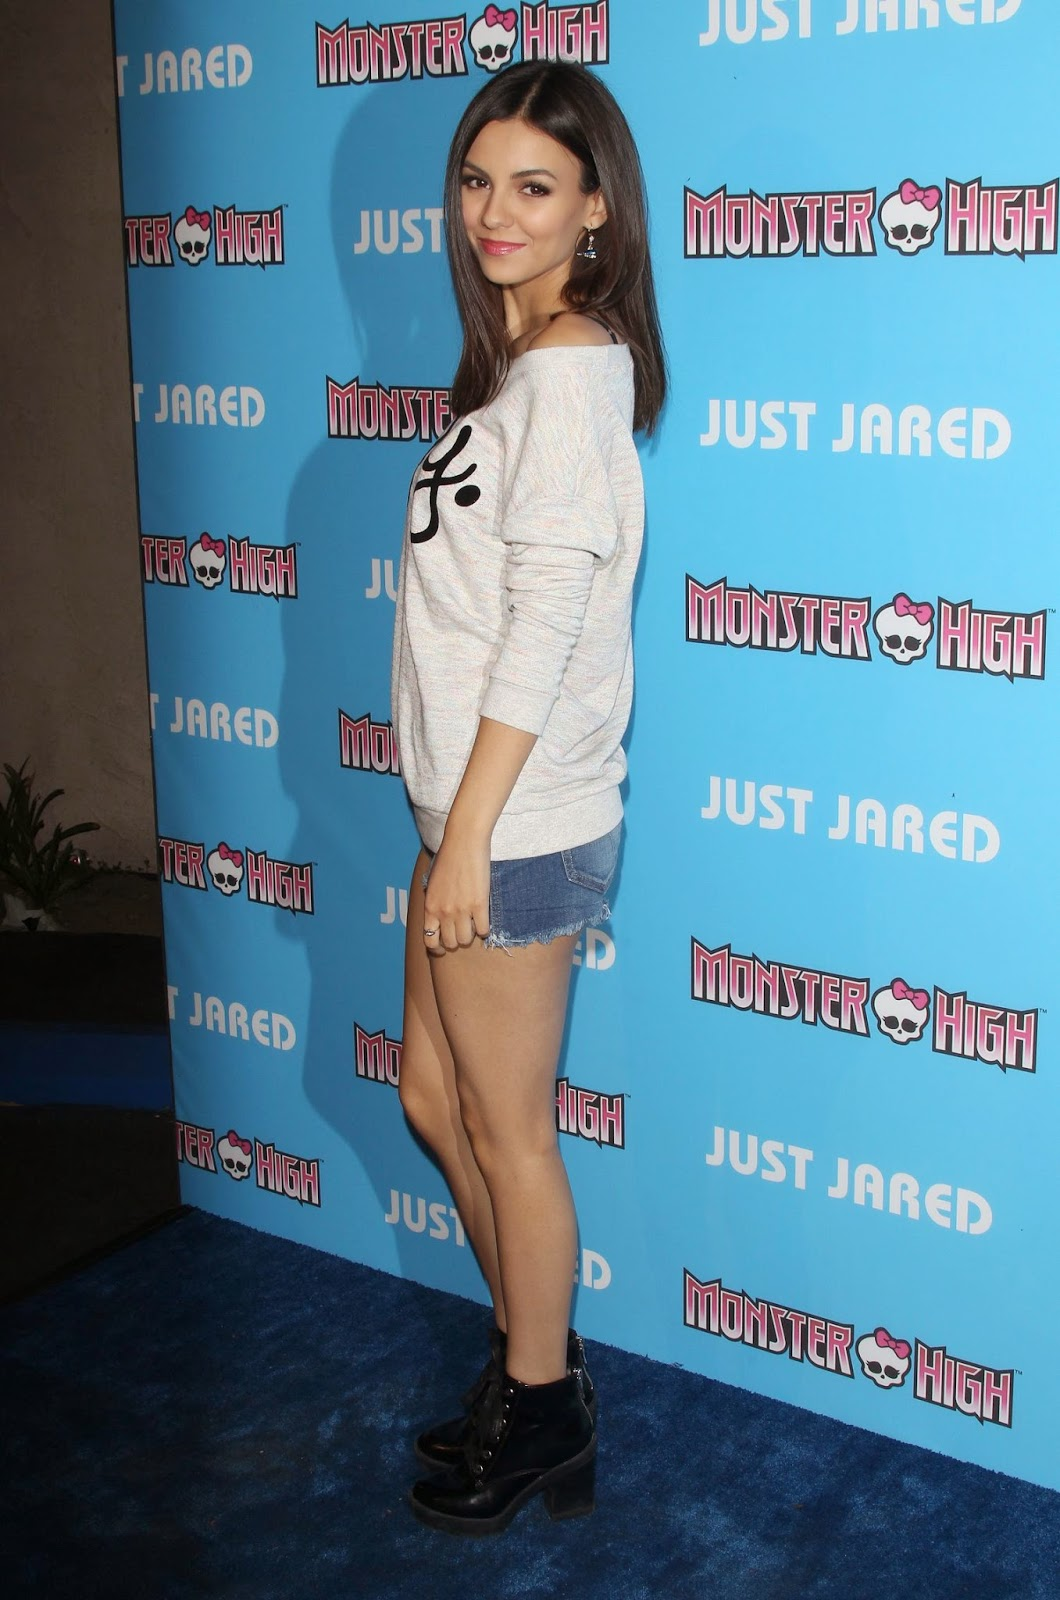 Victoria Justice shows off legs at the Just Jared Throwback Thursday Roller Skating Party in LA